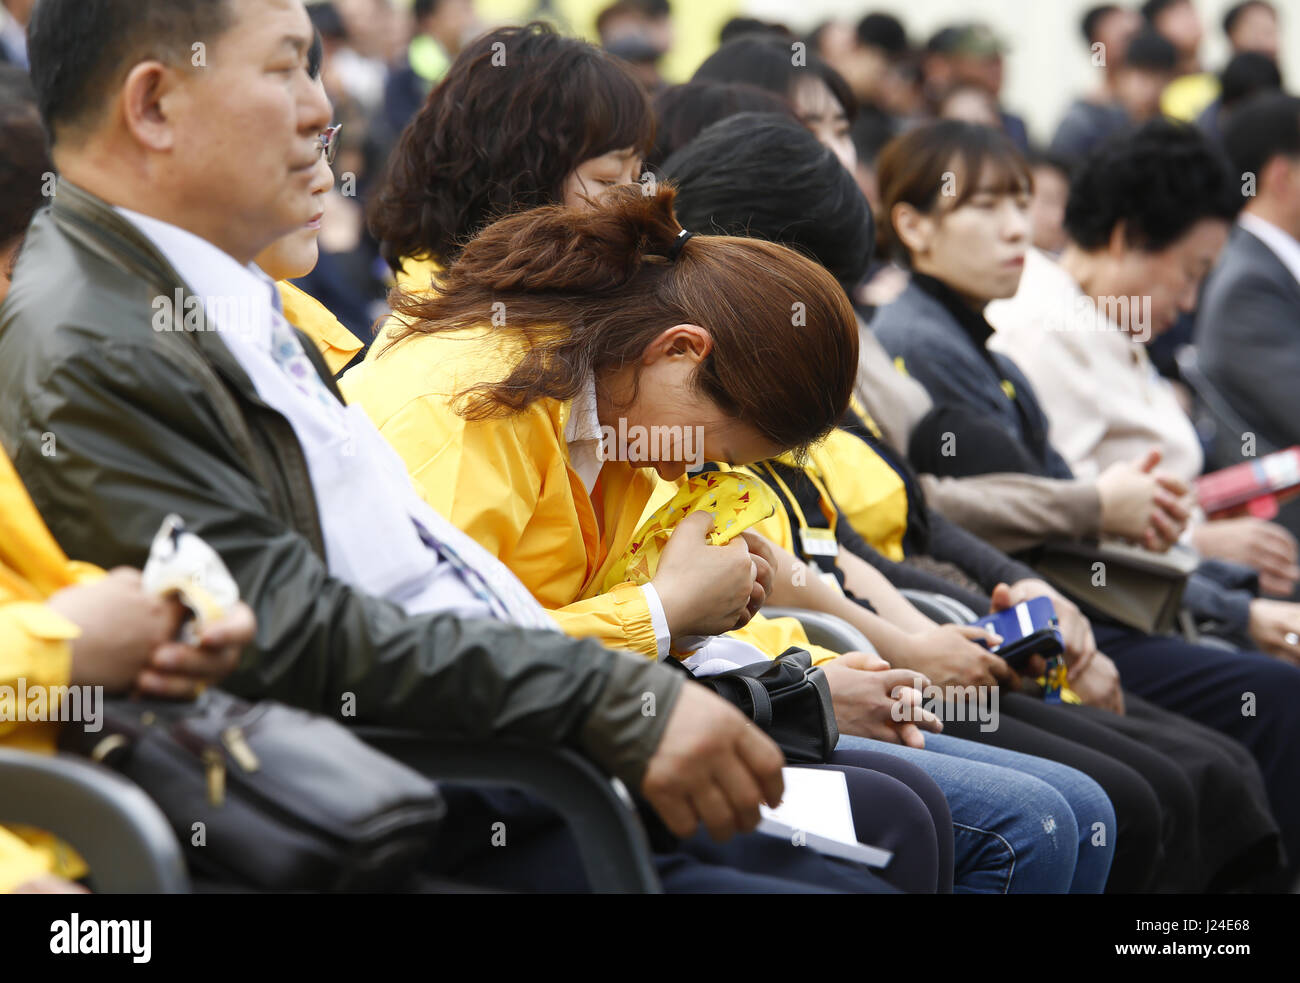 Family Members Of Victims Of Sewol Ferry Disaster Stock Photos & Family Members Of Victims Of Sewol Ferry Disaster Stock Images - Alamy